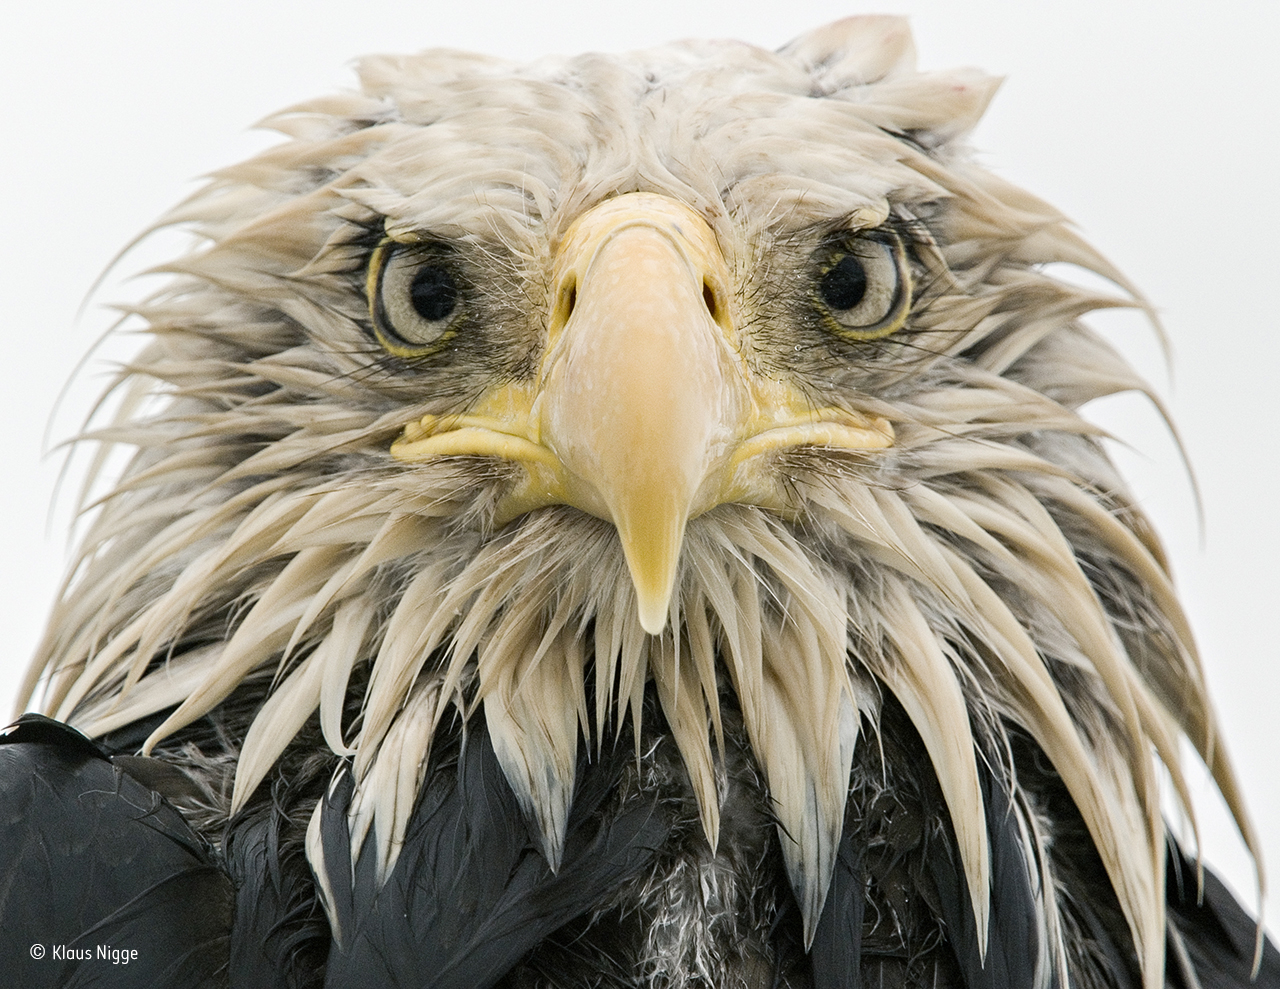 a photo of a bald eagle as it stares into the camera